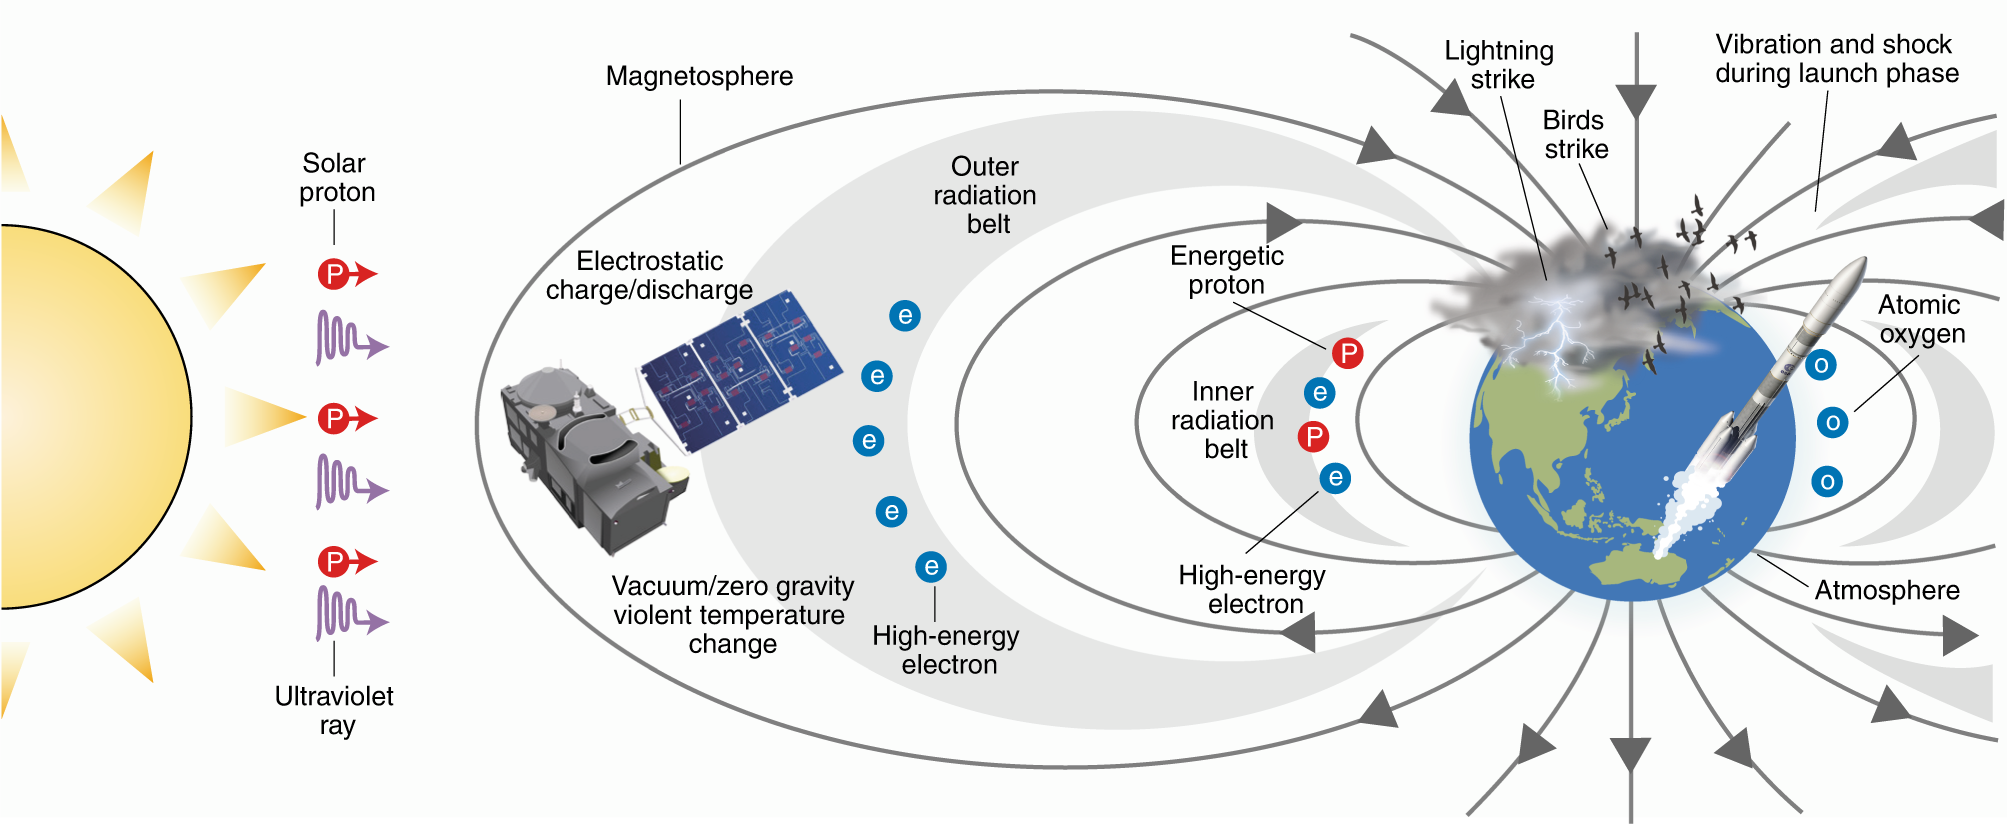 Magnetohydrodynamic oscillations in the solar corona and earth's magnetosphere